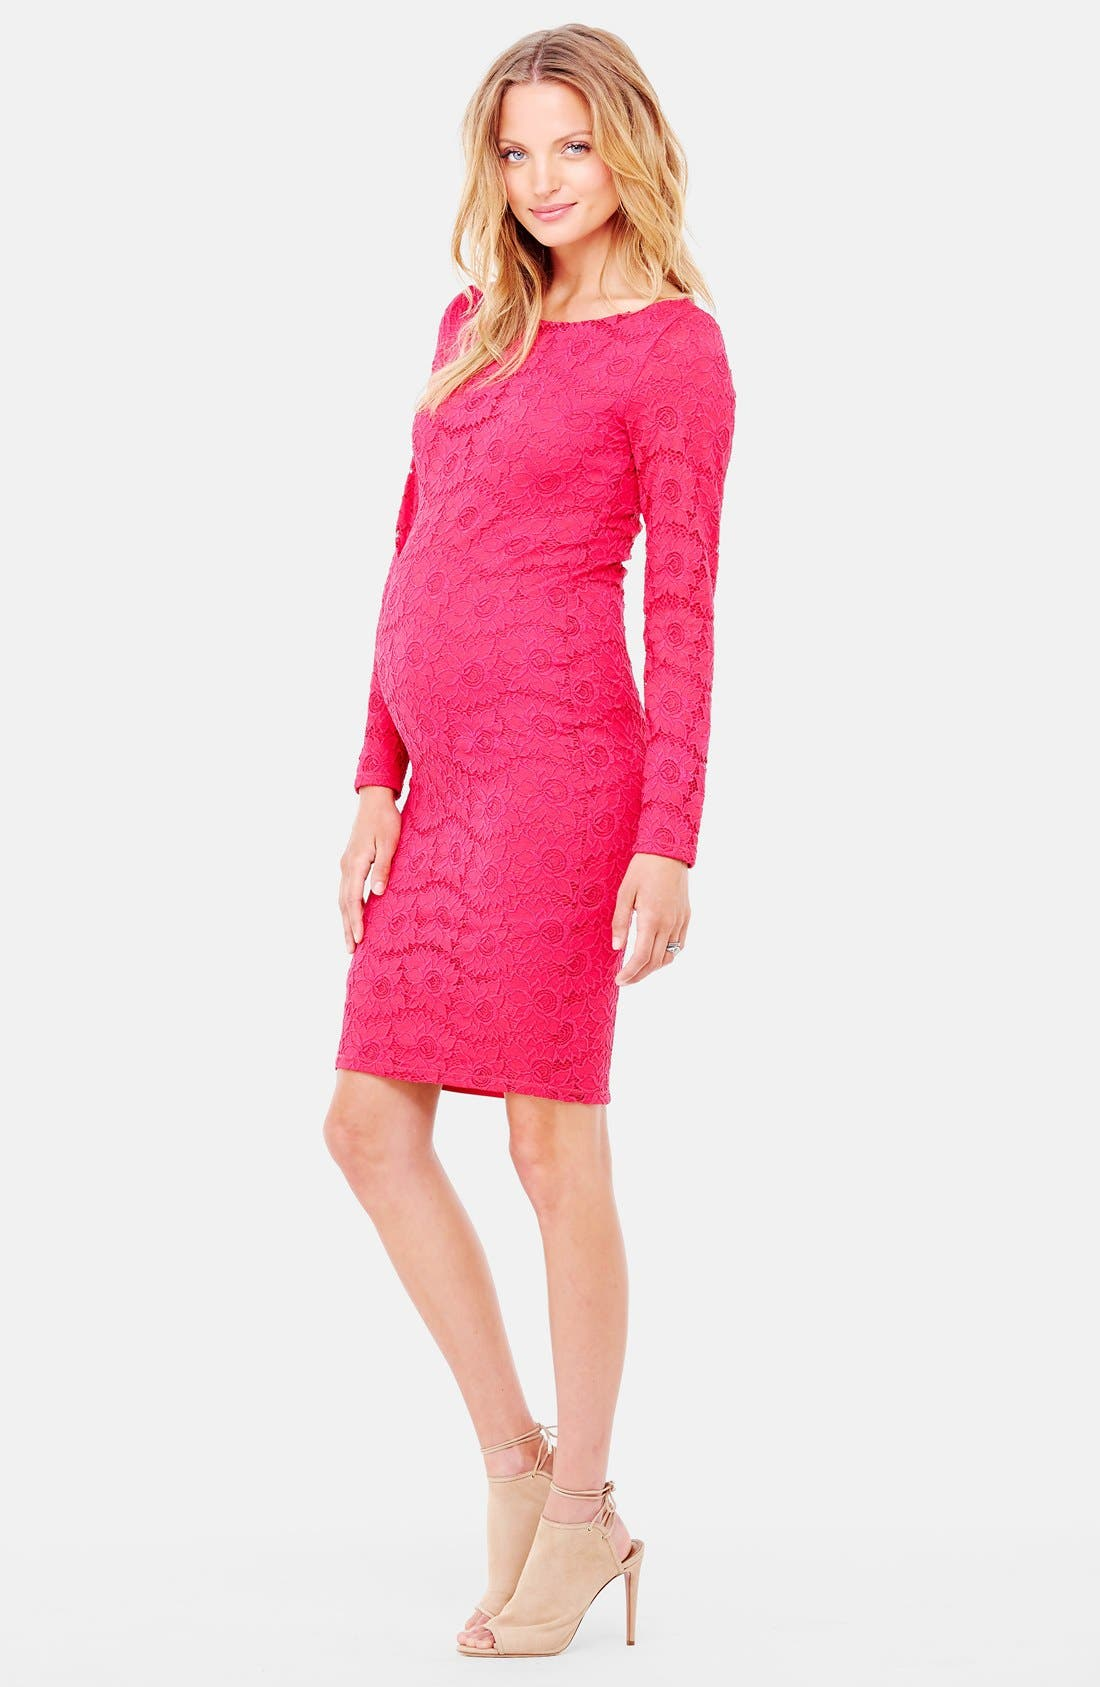 Womens maternity clothing nordstrom ombrellifo Images